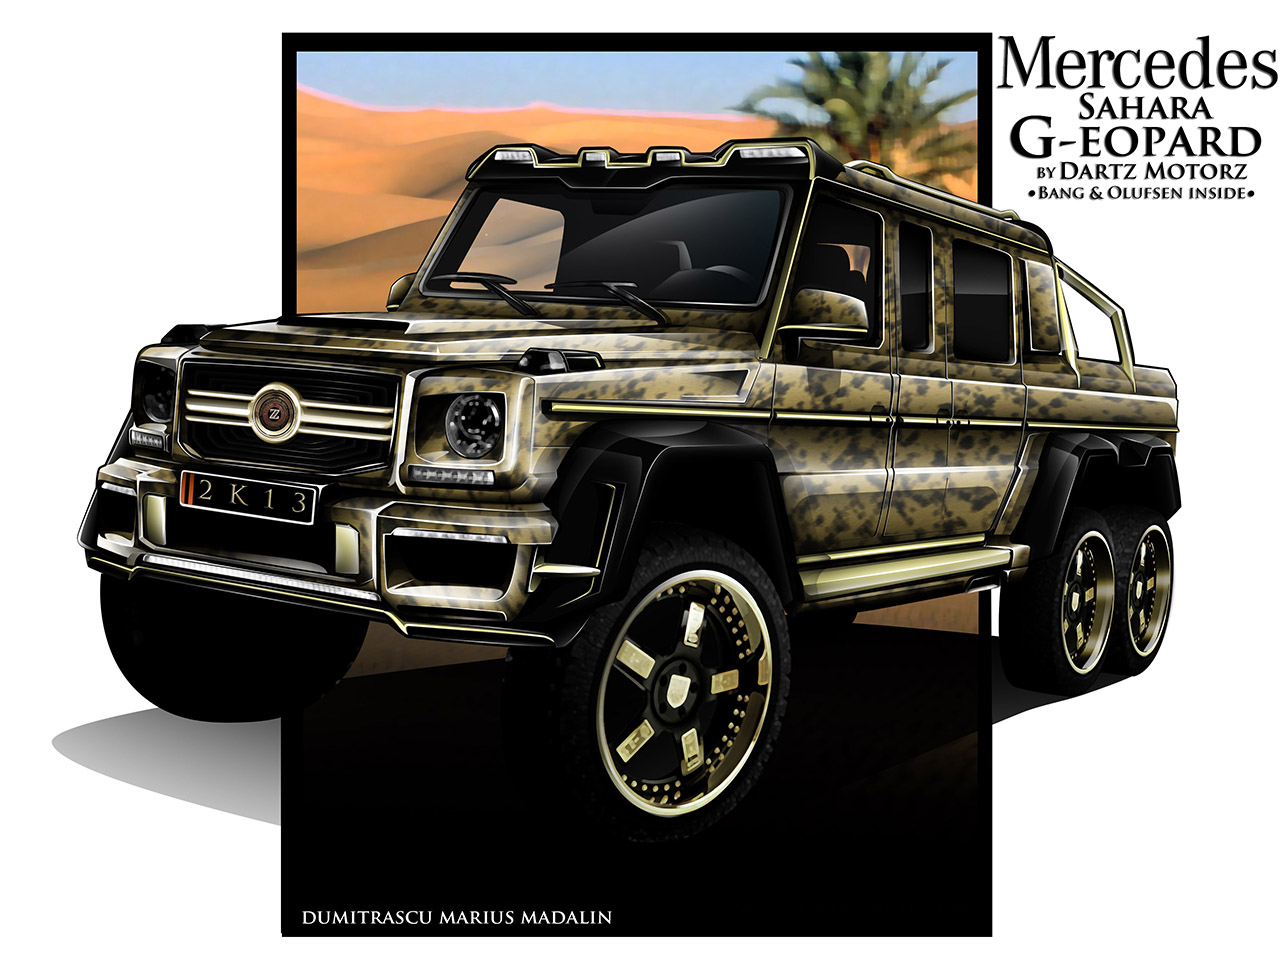 dartz promises own 6x6 g class with golden shishas and a dining room autoblog. Black Bedroom Furniture Sets. Home Design Ideas